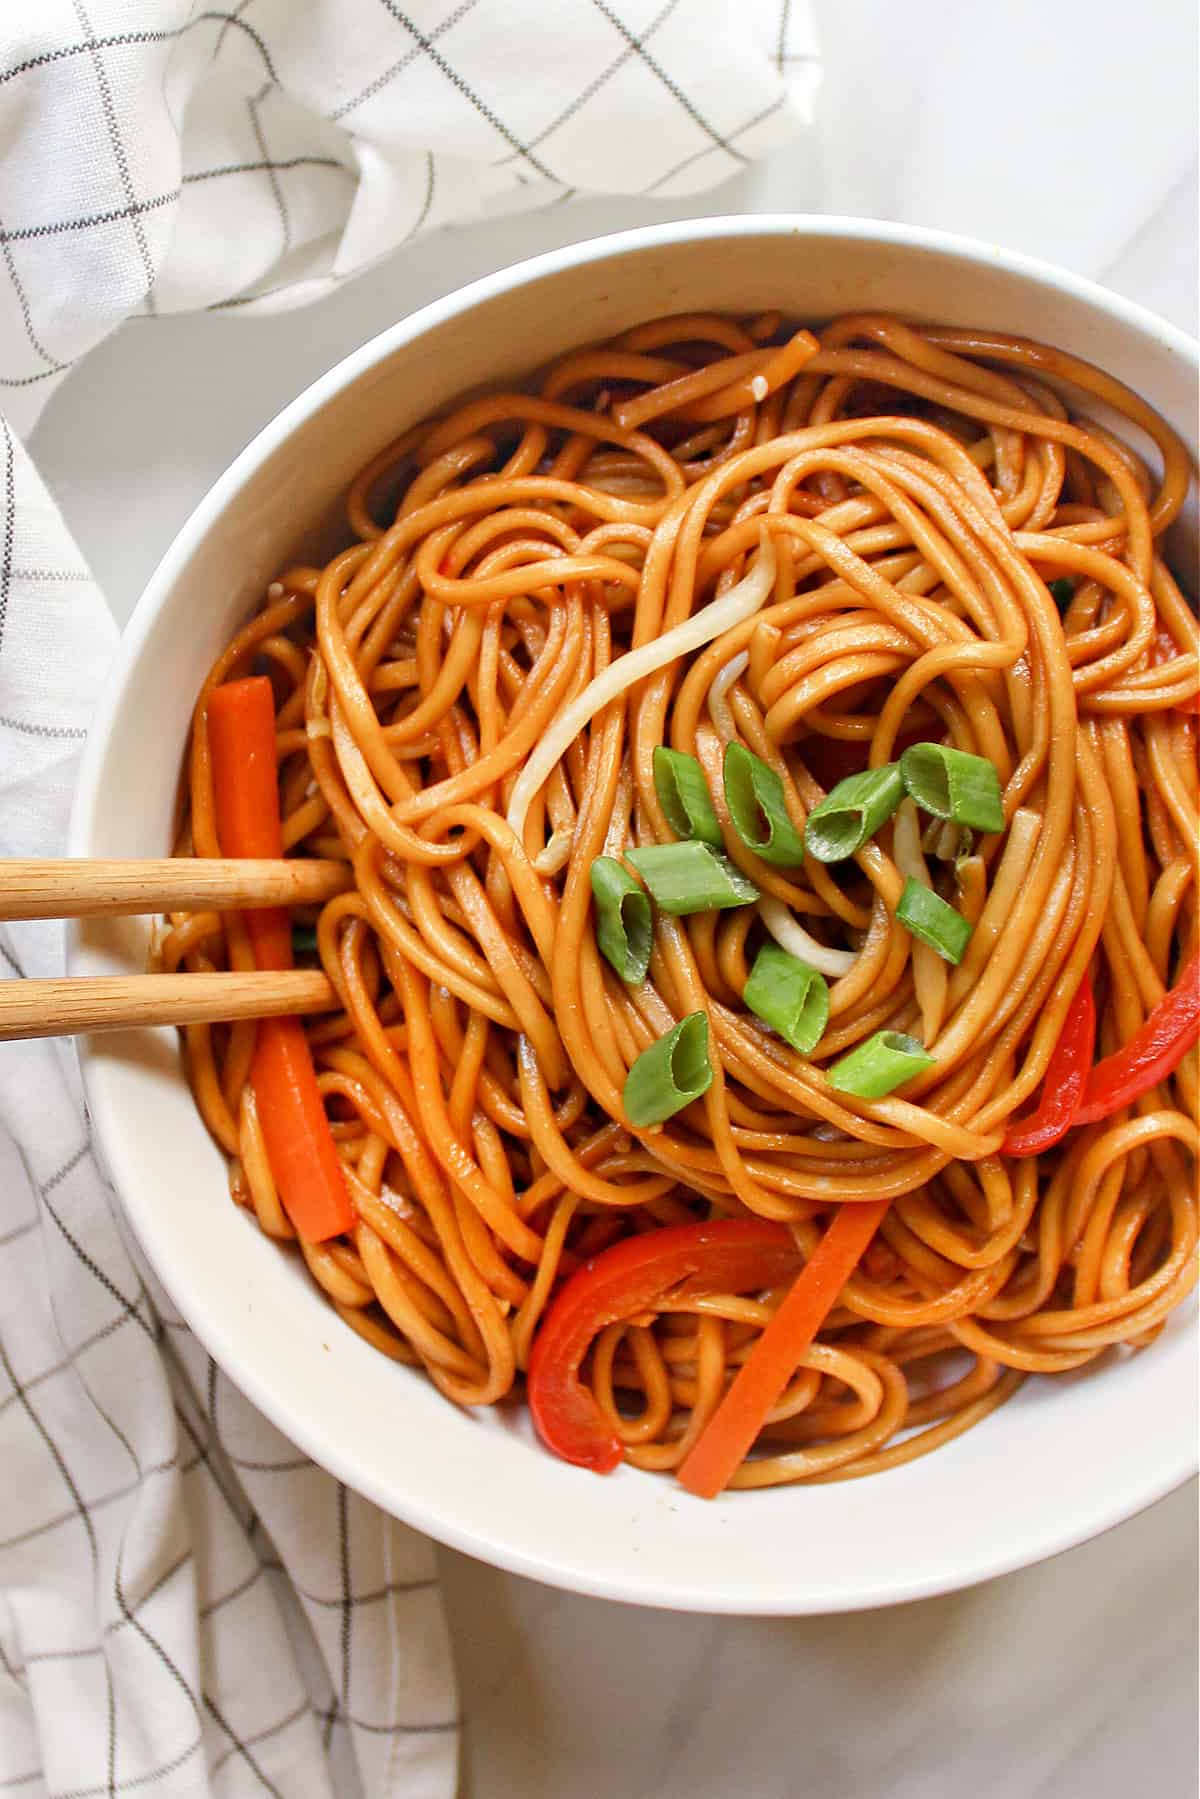 Overhead view of noodles in a white bowl with napkin on the side.